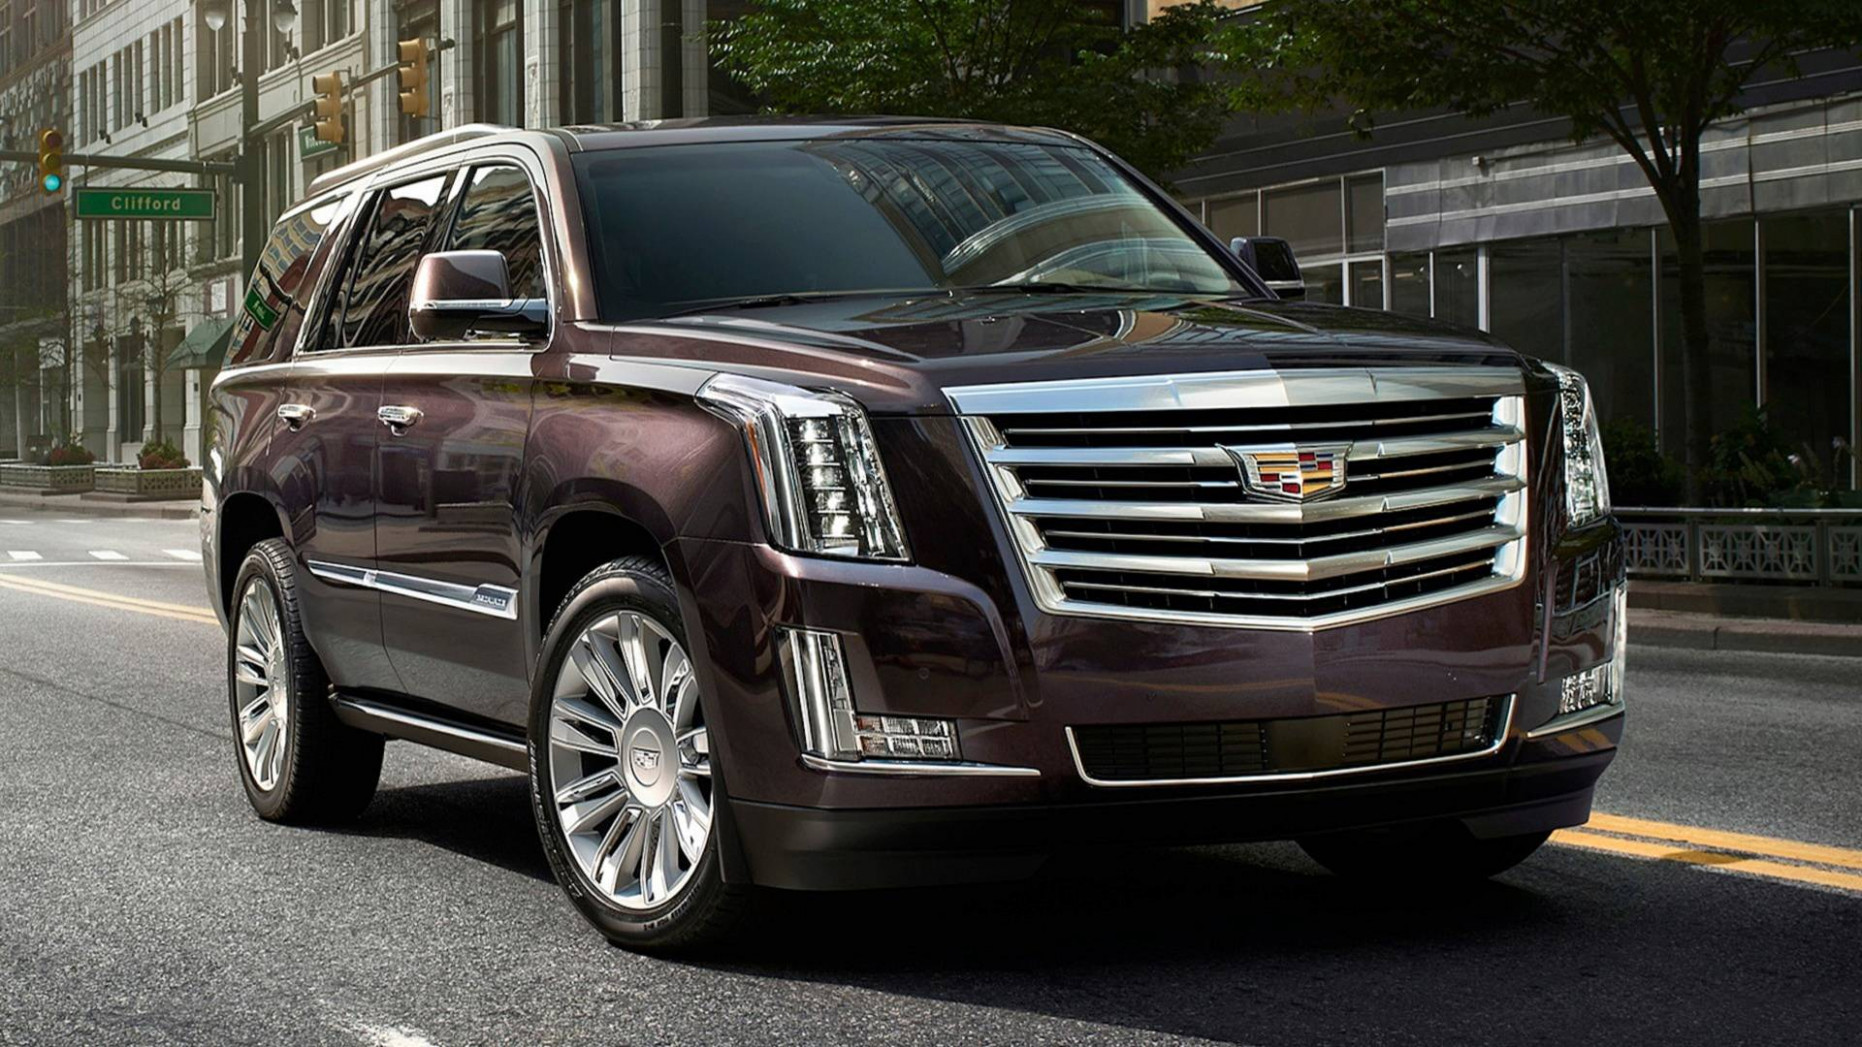 8 Cadillac Escalade Could Have Three Engines, Including Plug-In - cadillac plug in hybrid 2020